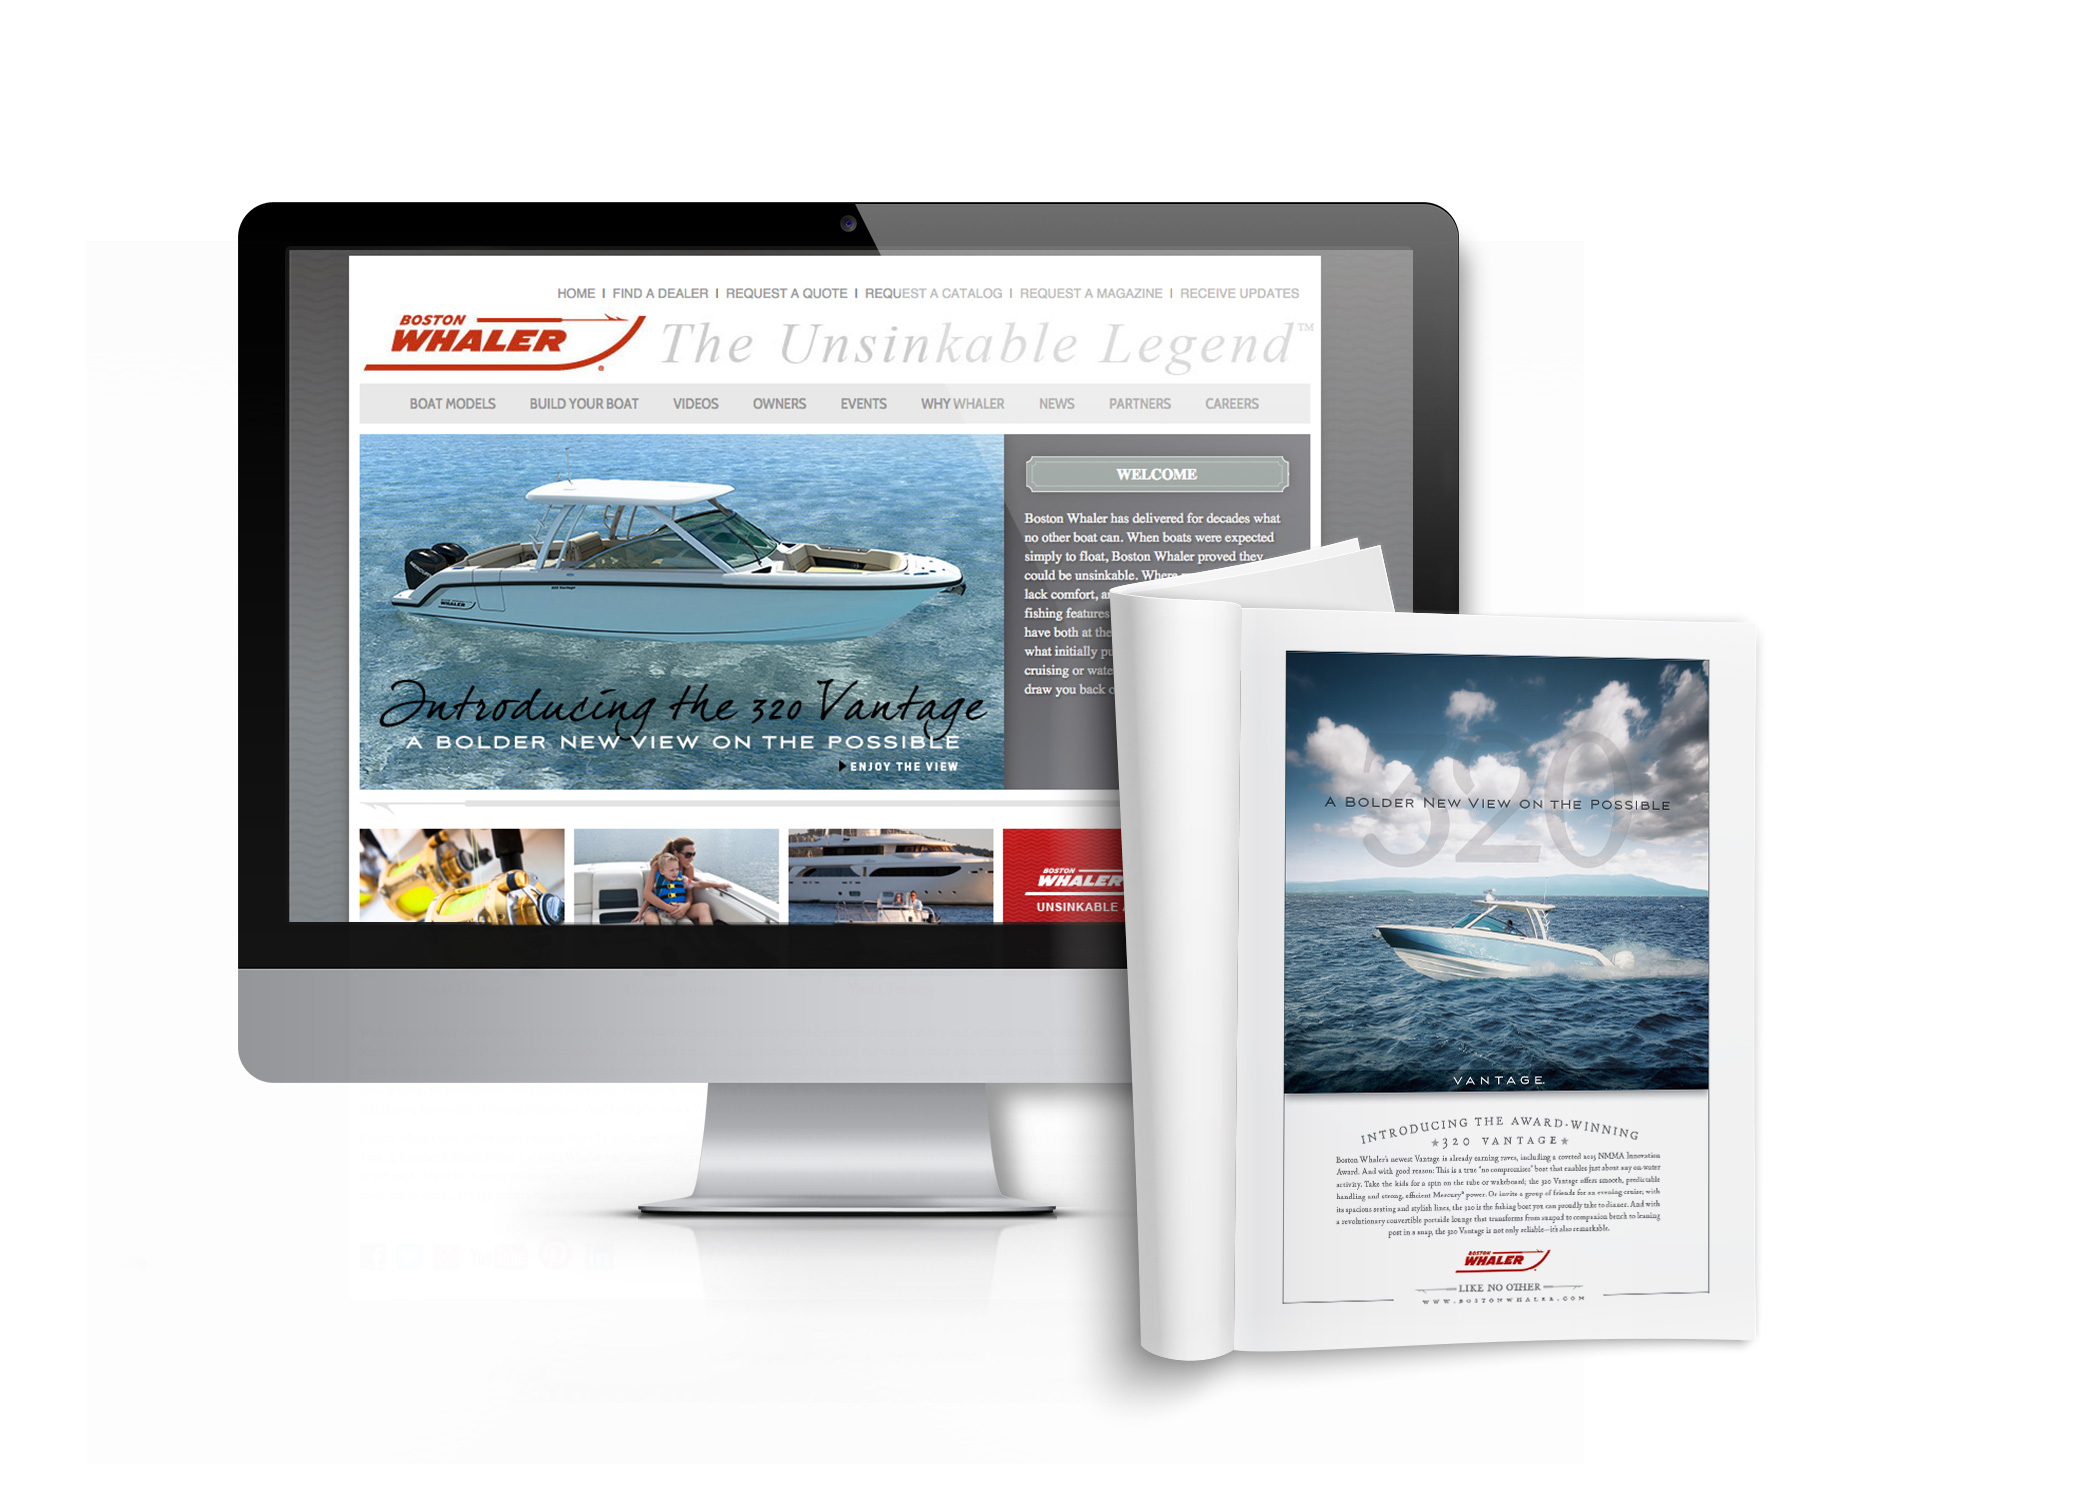 Boston Whaler website displayed on a desktop computer with an open magazine featuring a Boston Whaler ad in front